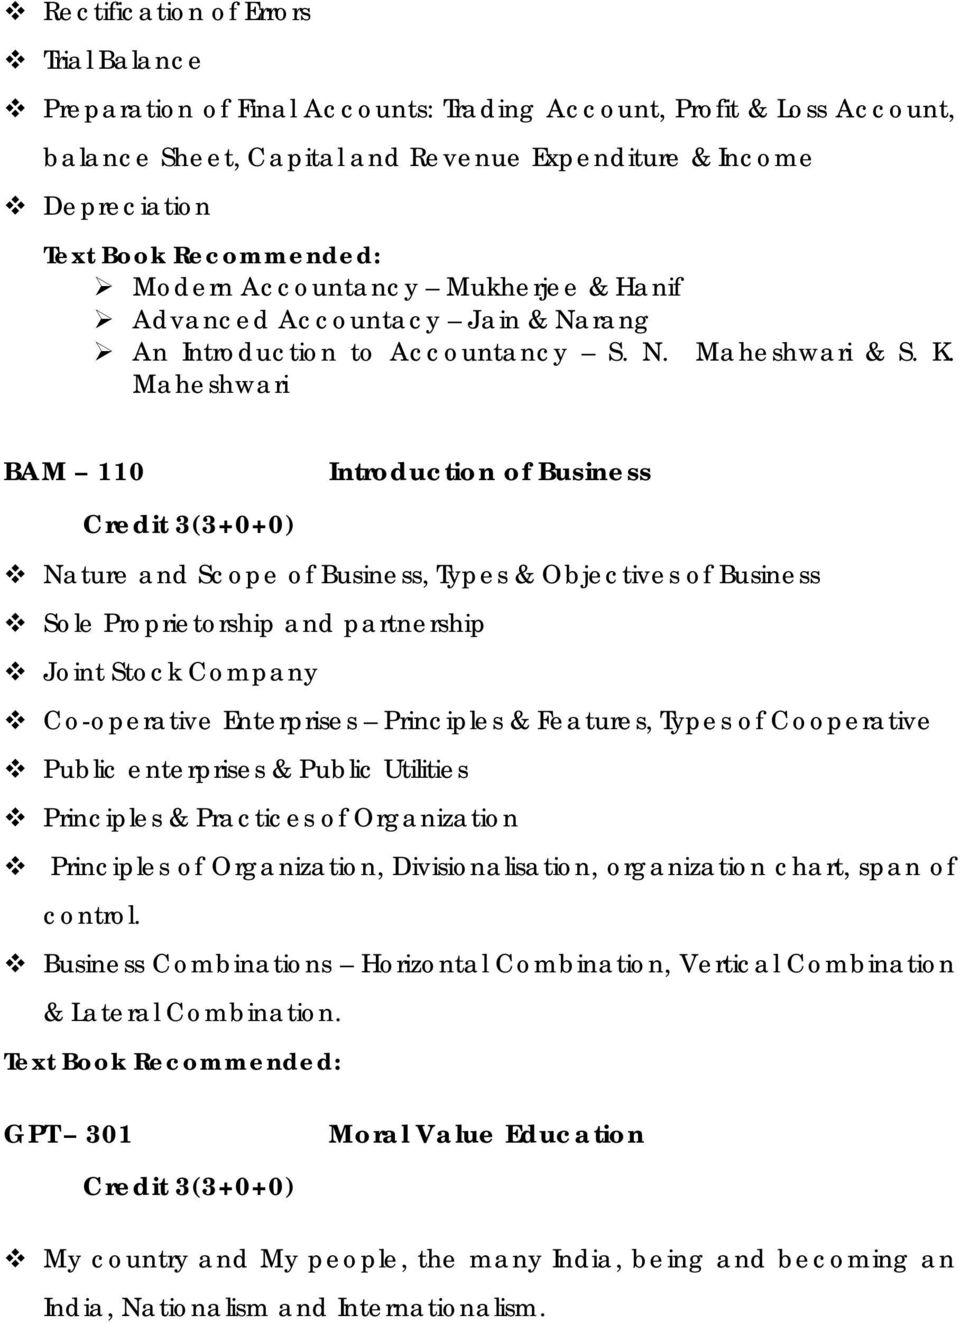 Maheshwari BAM 110 Introduction of Business Credit 3(3+0+0) Nature and Scope of Business, Types & Objectives of Business Sole Proprietorship and partnership Joint Stock Company Co-operative